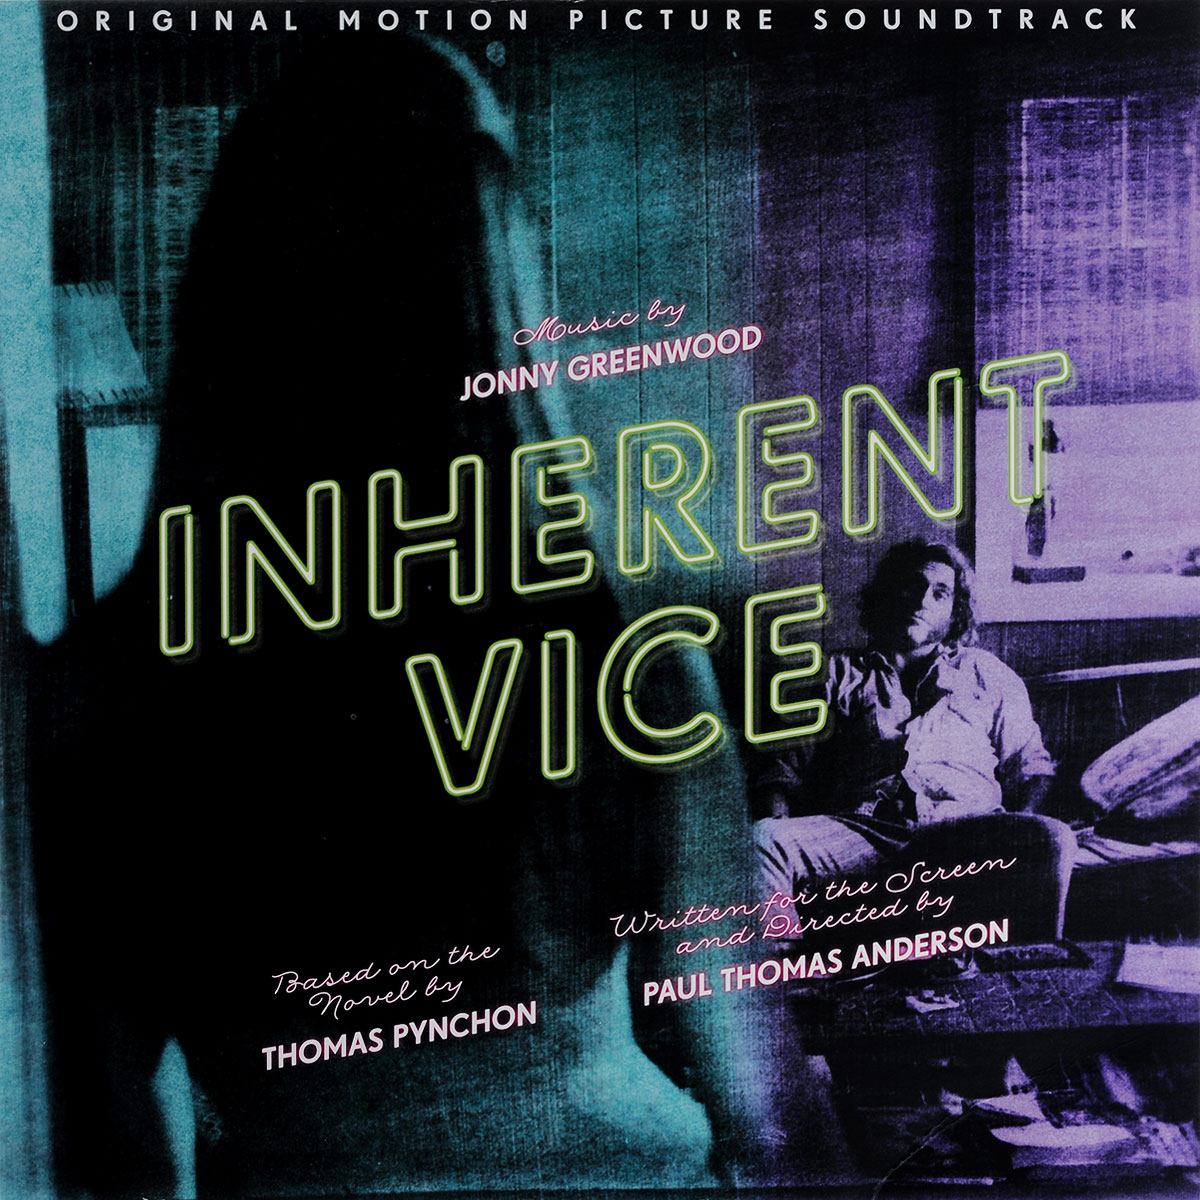 Jonny Greenwood. Inherent Vice. Original Motion Picture Soundtrack (2 LP)